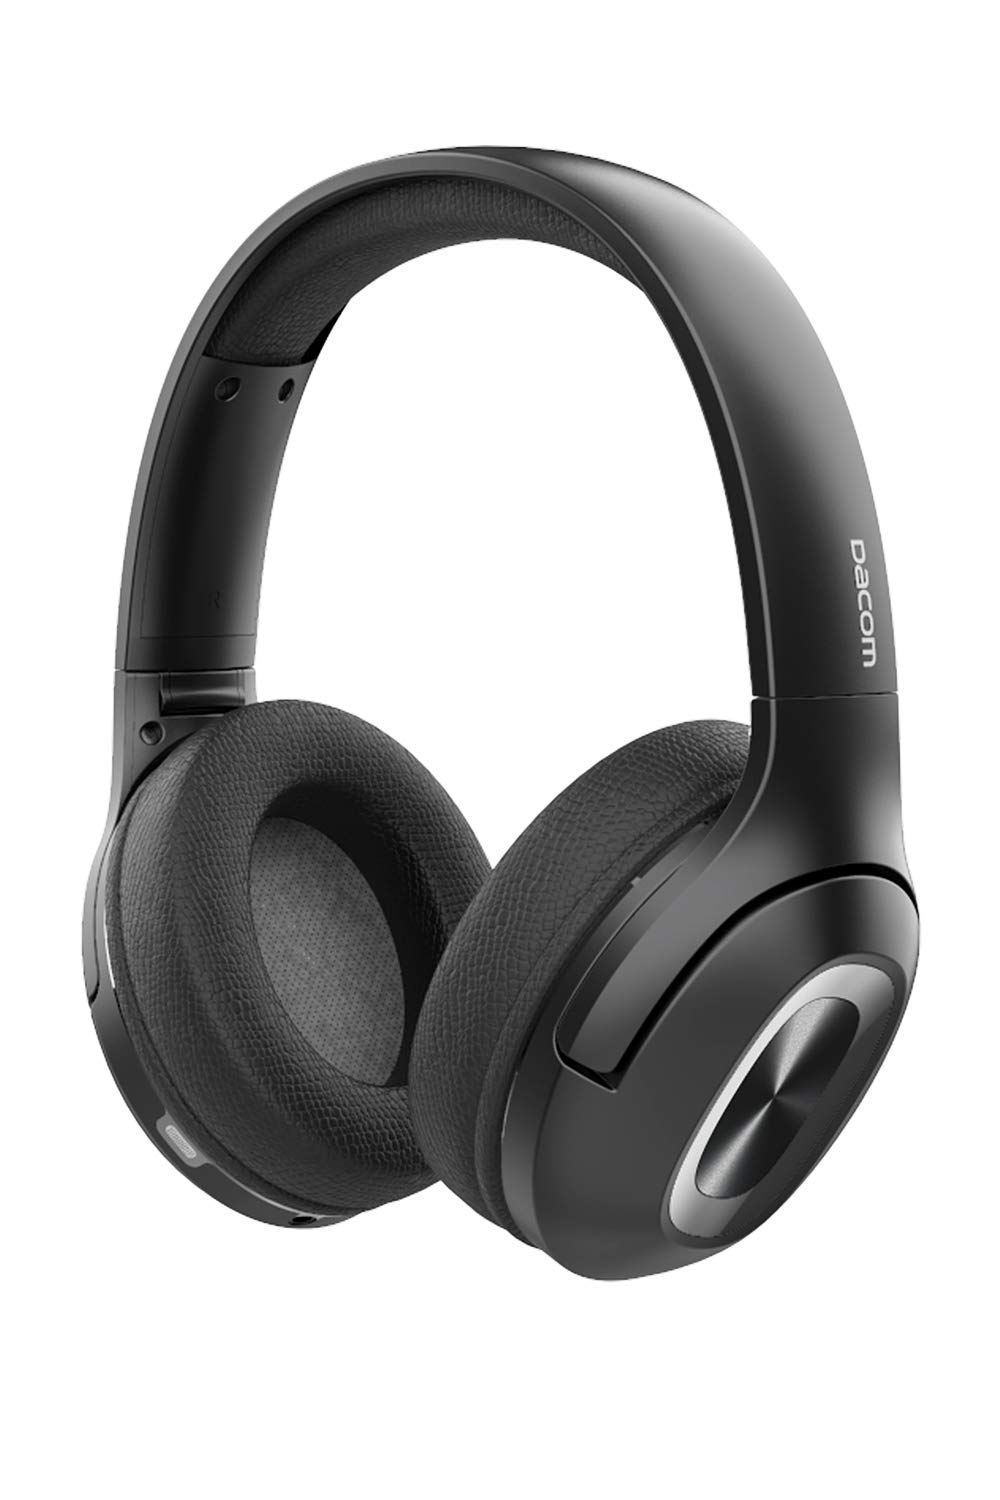 DACOM HF002 Wireless Bluetooth 5.0 Headphones with Hi-Fi Deep Bass, Over Ear Bluetooth Headphones use CSR+TI chip with Soft Protein earpads and CVC 8.0 MIC, 65 hrs palying time for PC Games or Phone